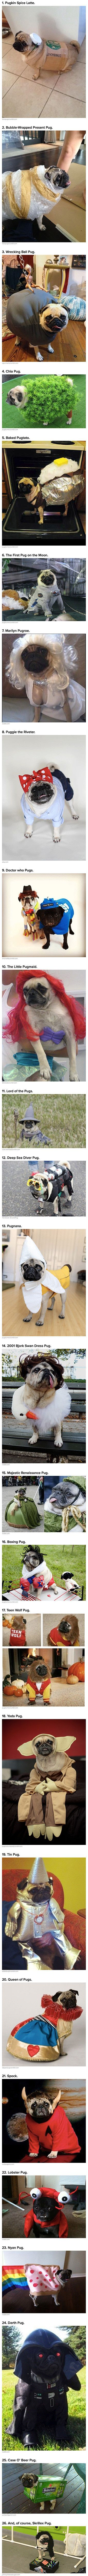 We have rounded up some geeky costumes that show why pugs love Halloween.